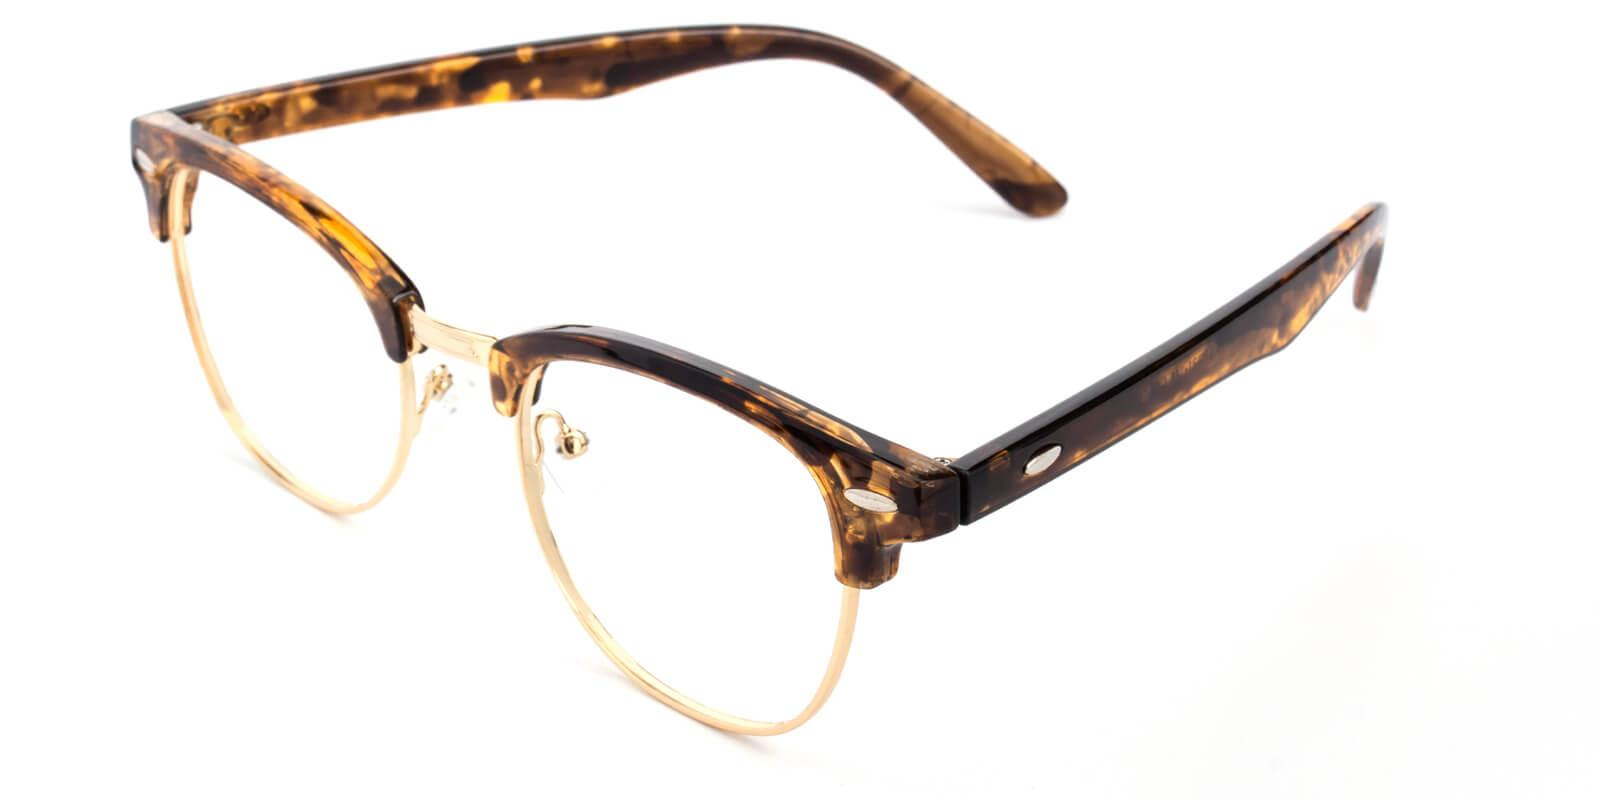 Ancient-Gold-Browline-Metal-Eyeglasses-additional1